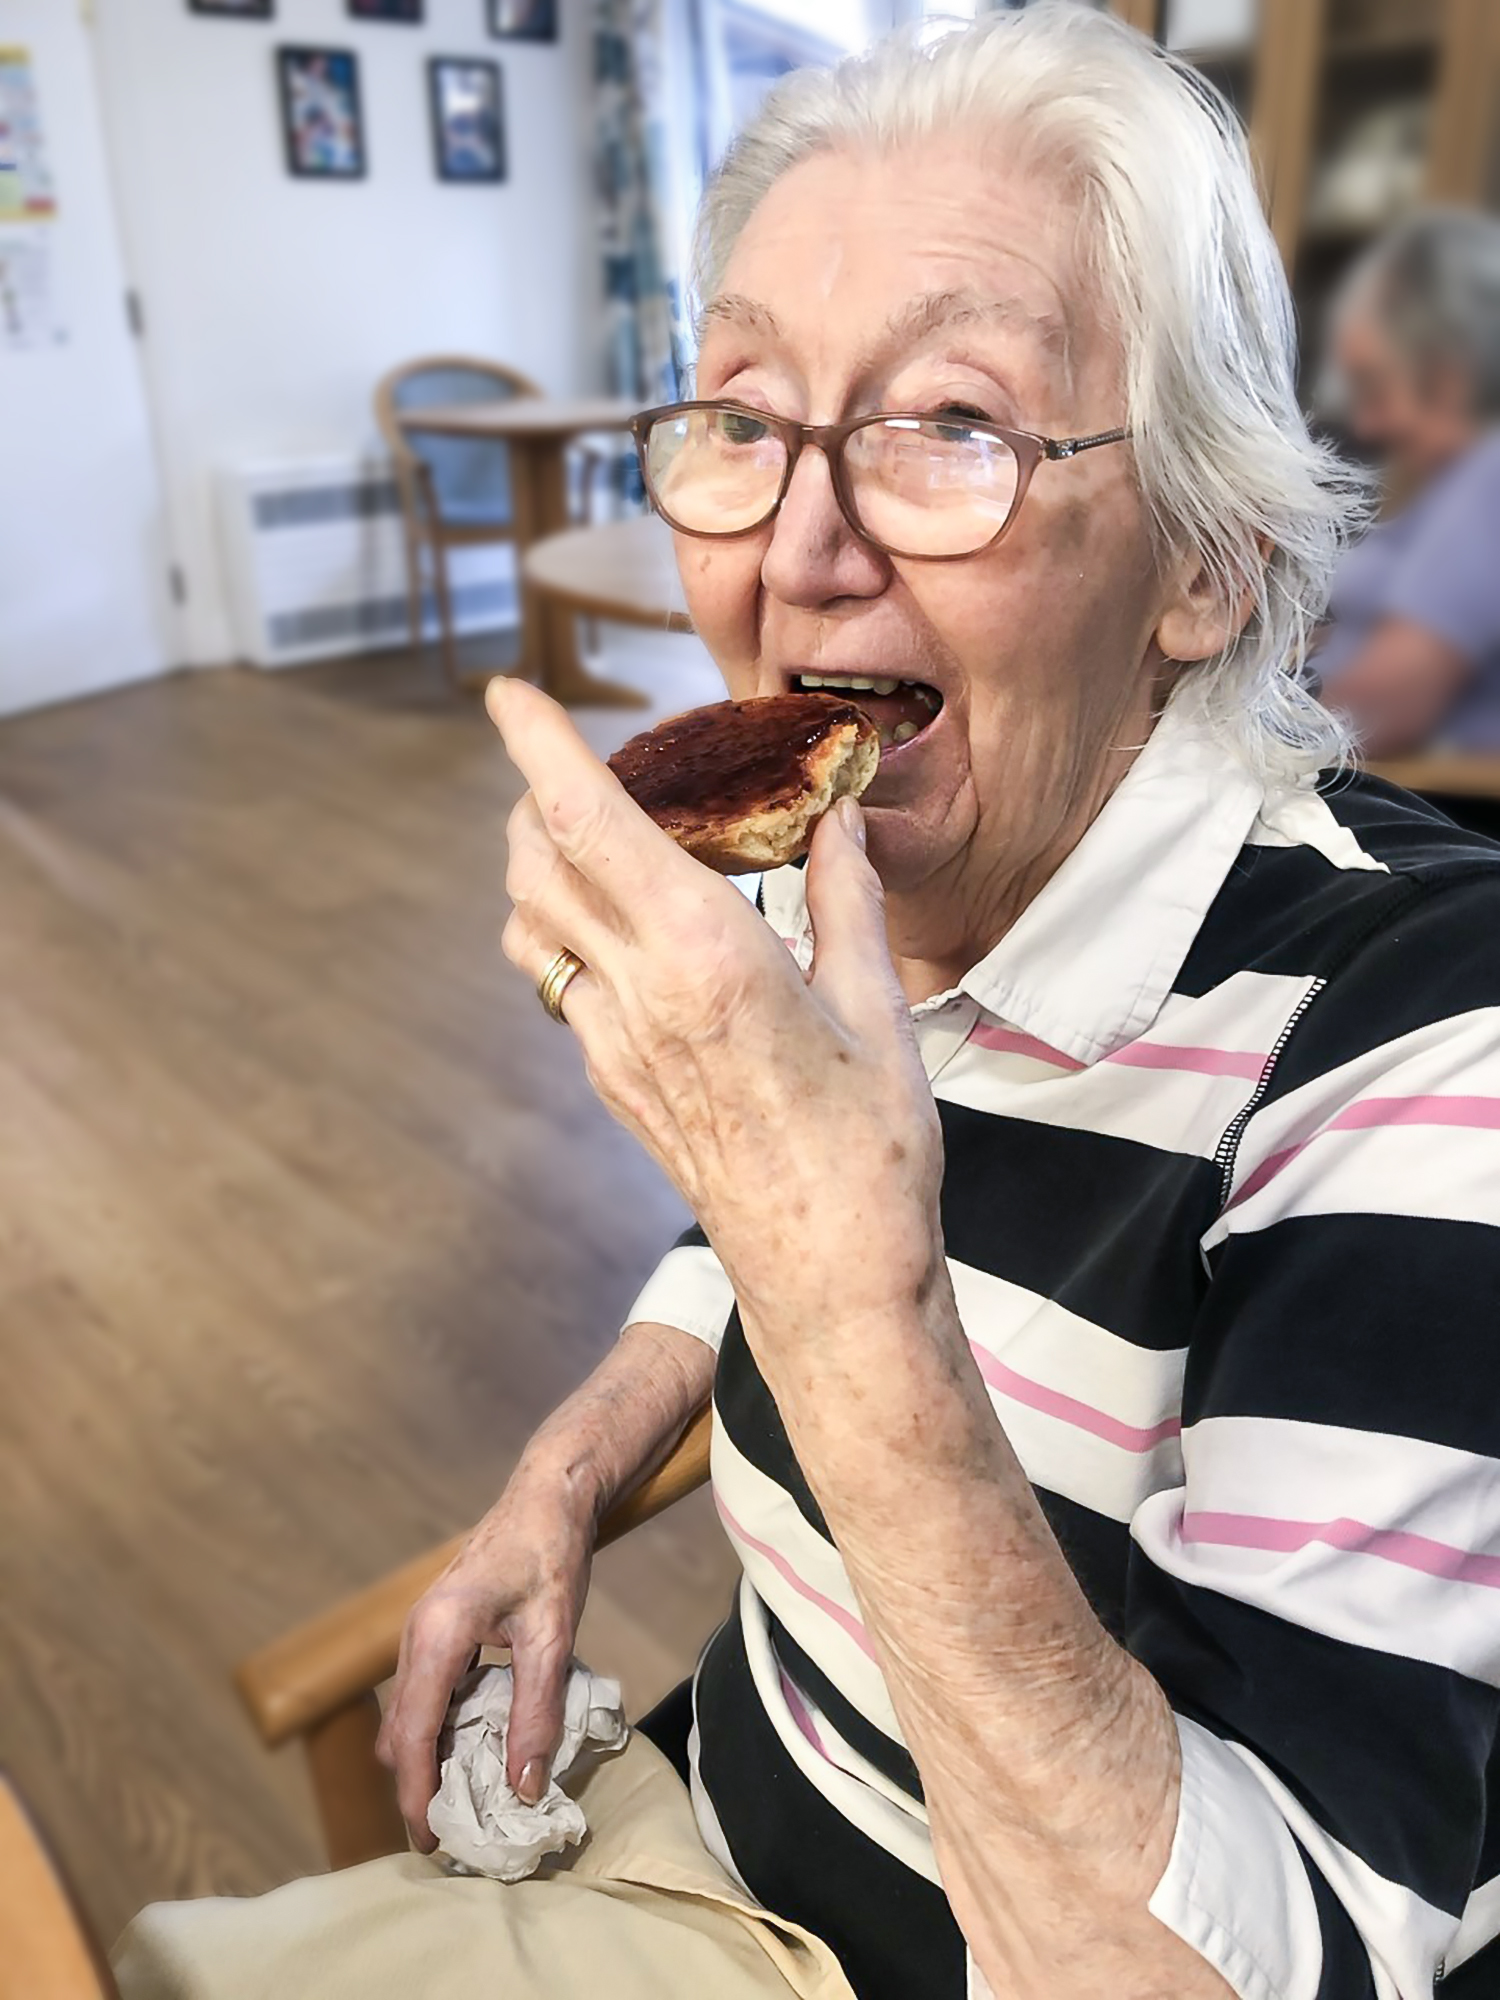 A Bernard Sunley care home resident eating a freshly made scone